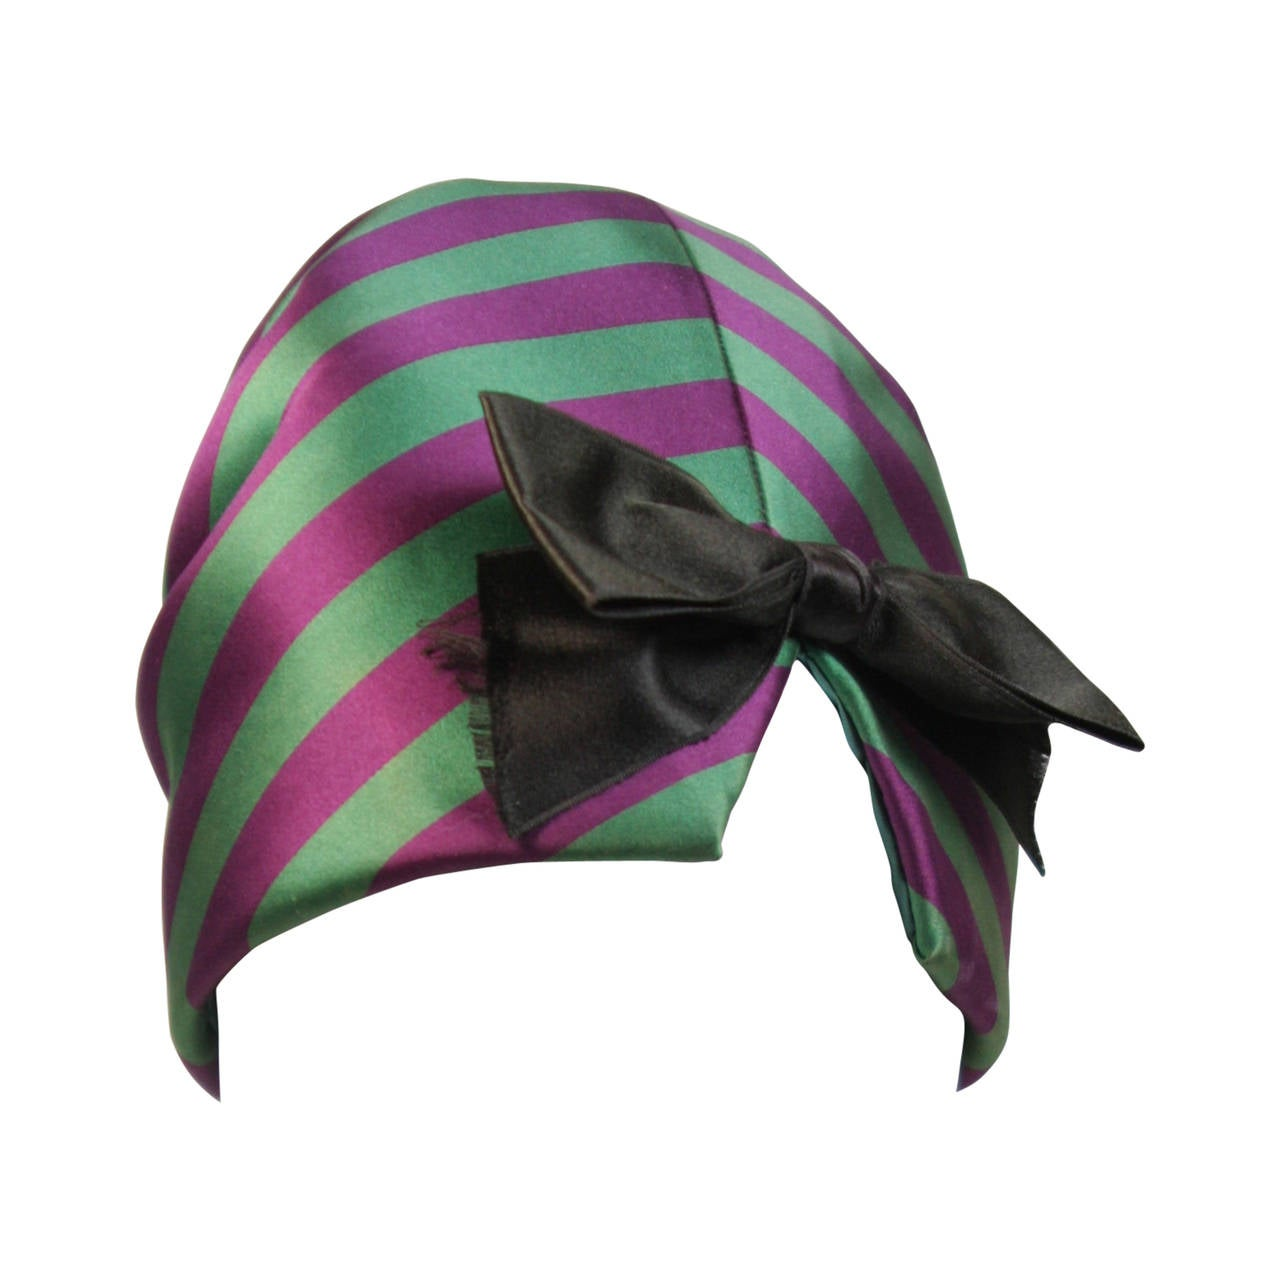 Yves Saint Laurent Rive Gauche Purple and Green Silk Rouched Hat with Bow 1